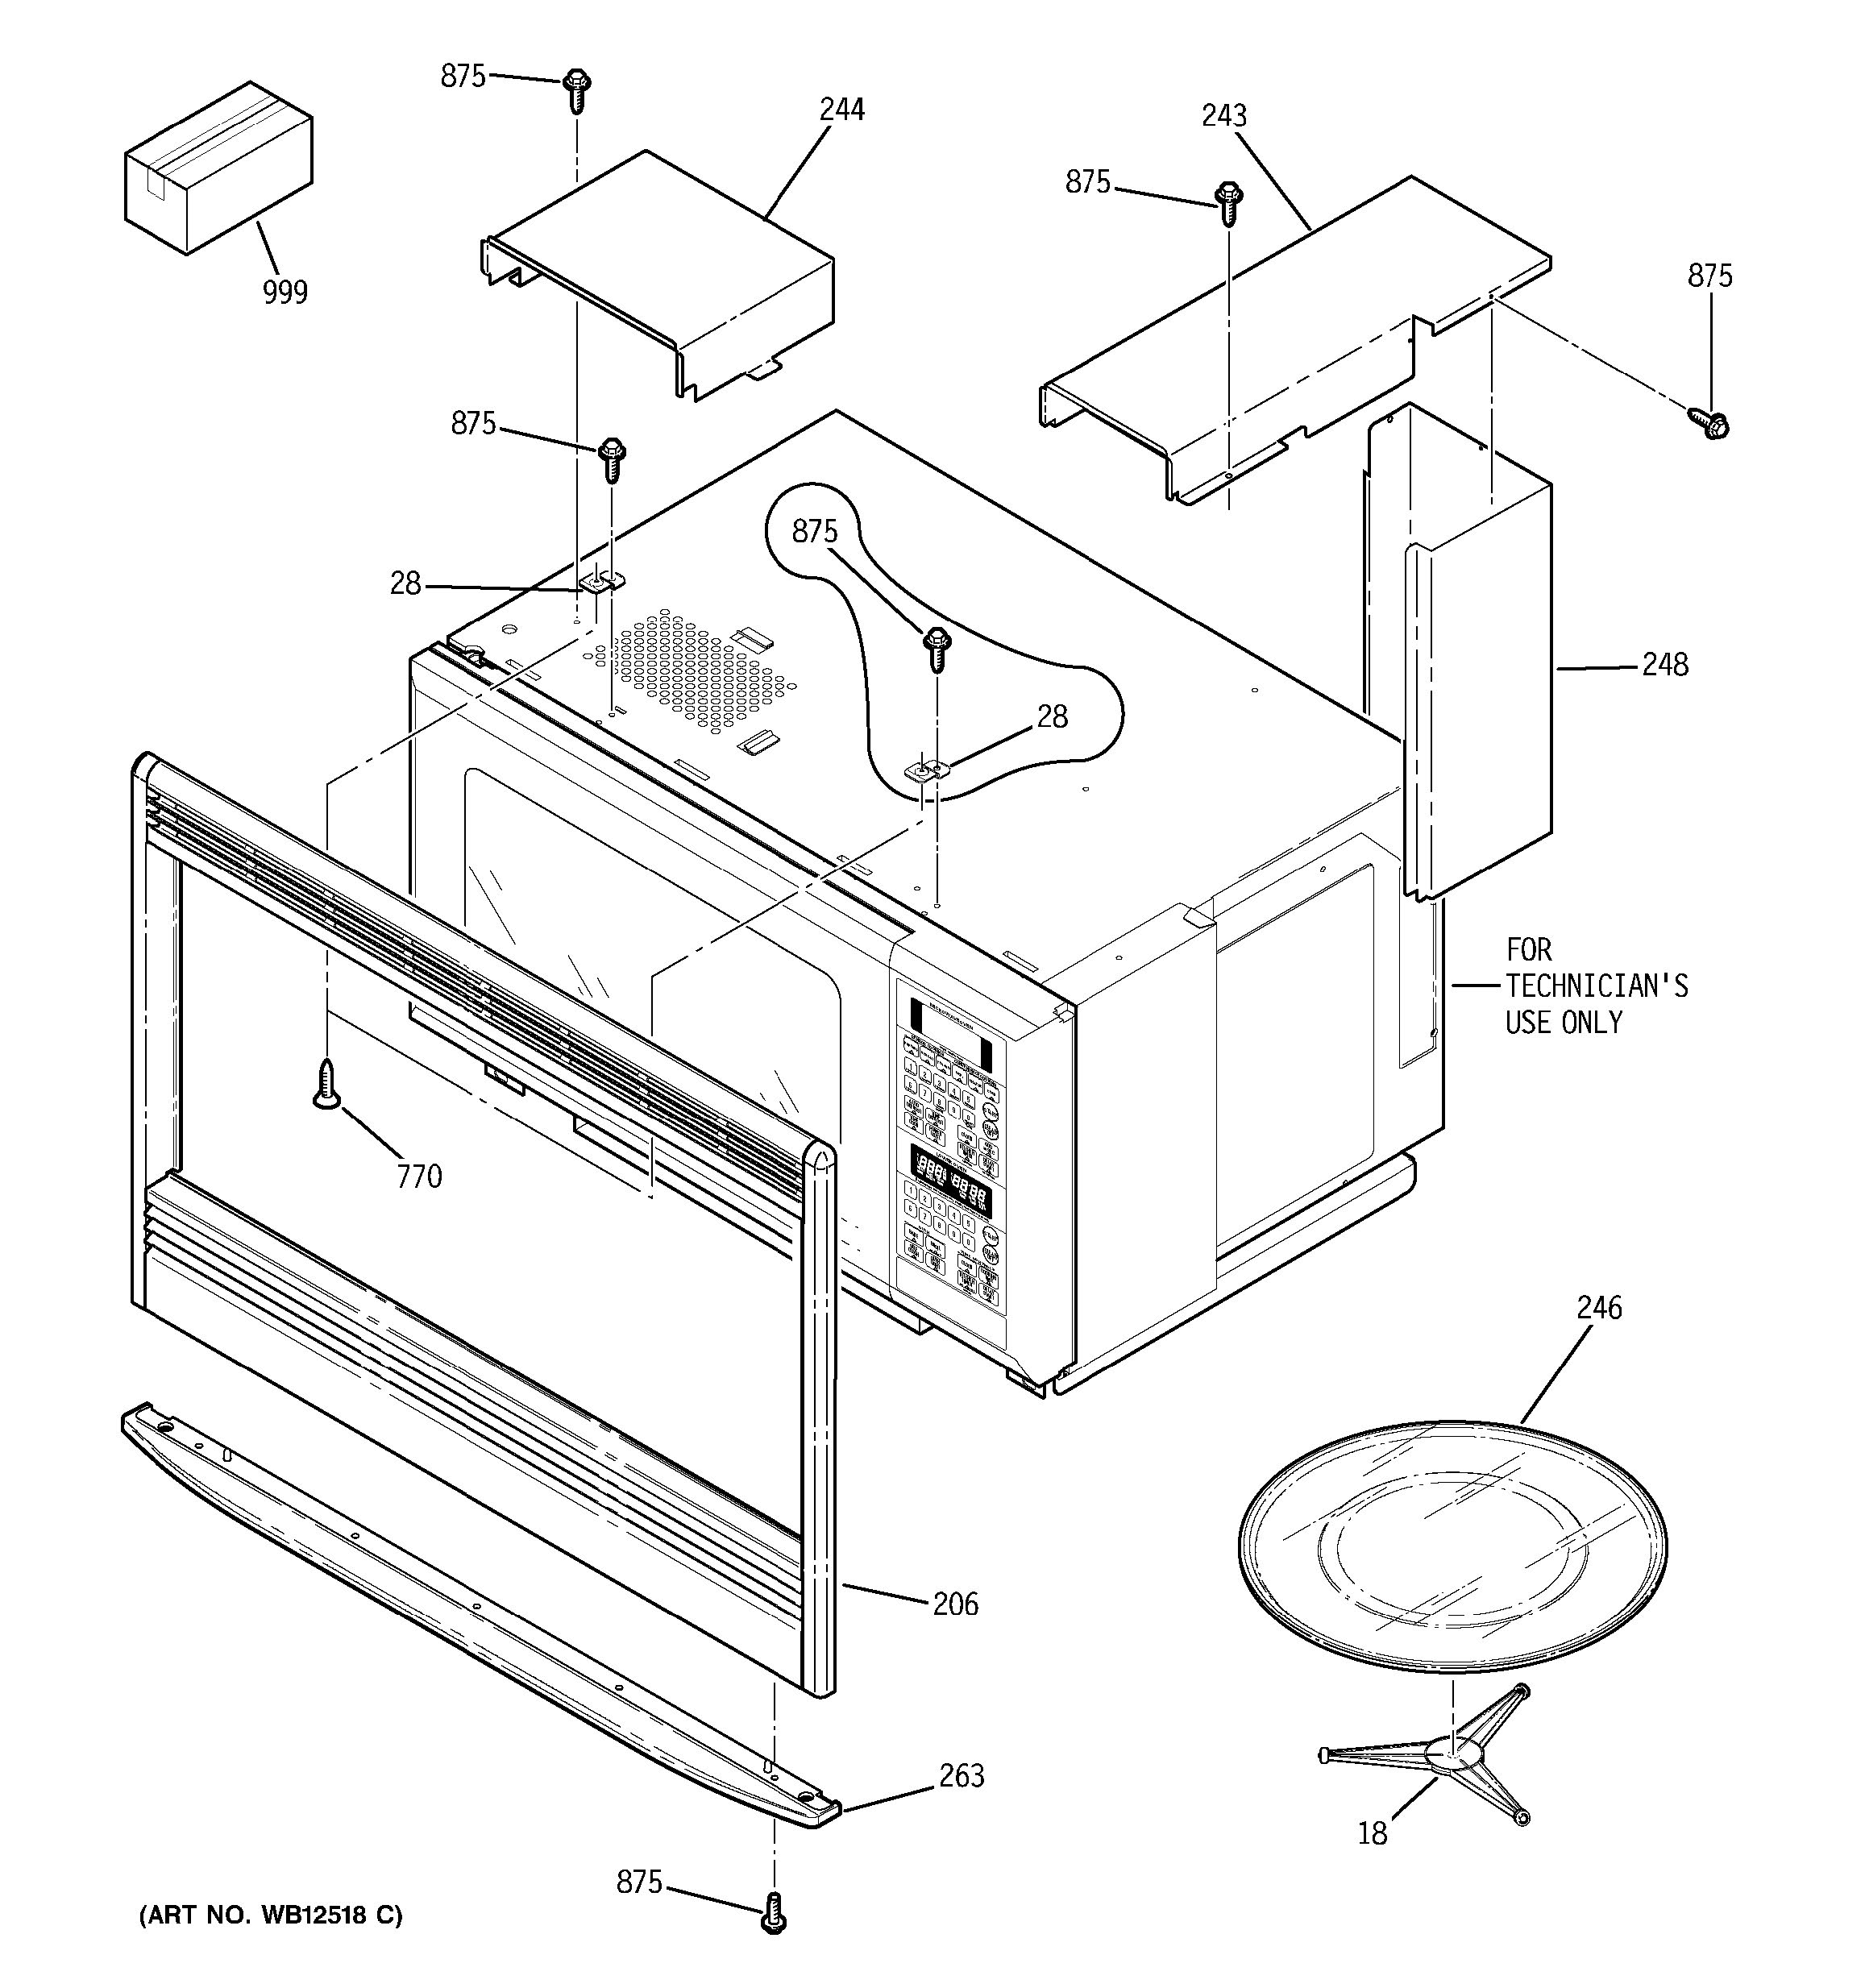 Assembly View For Oven Cavity